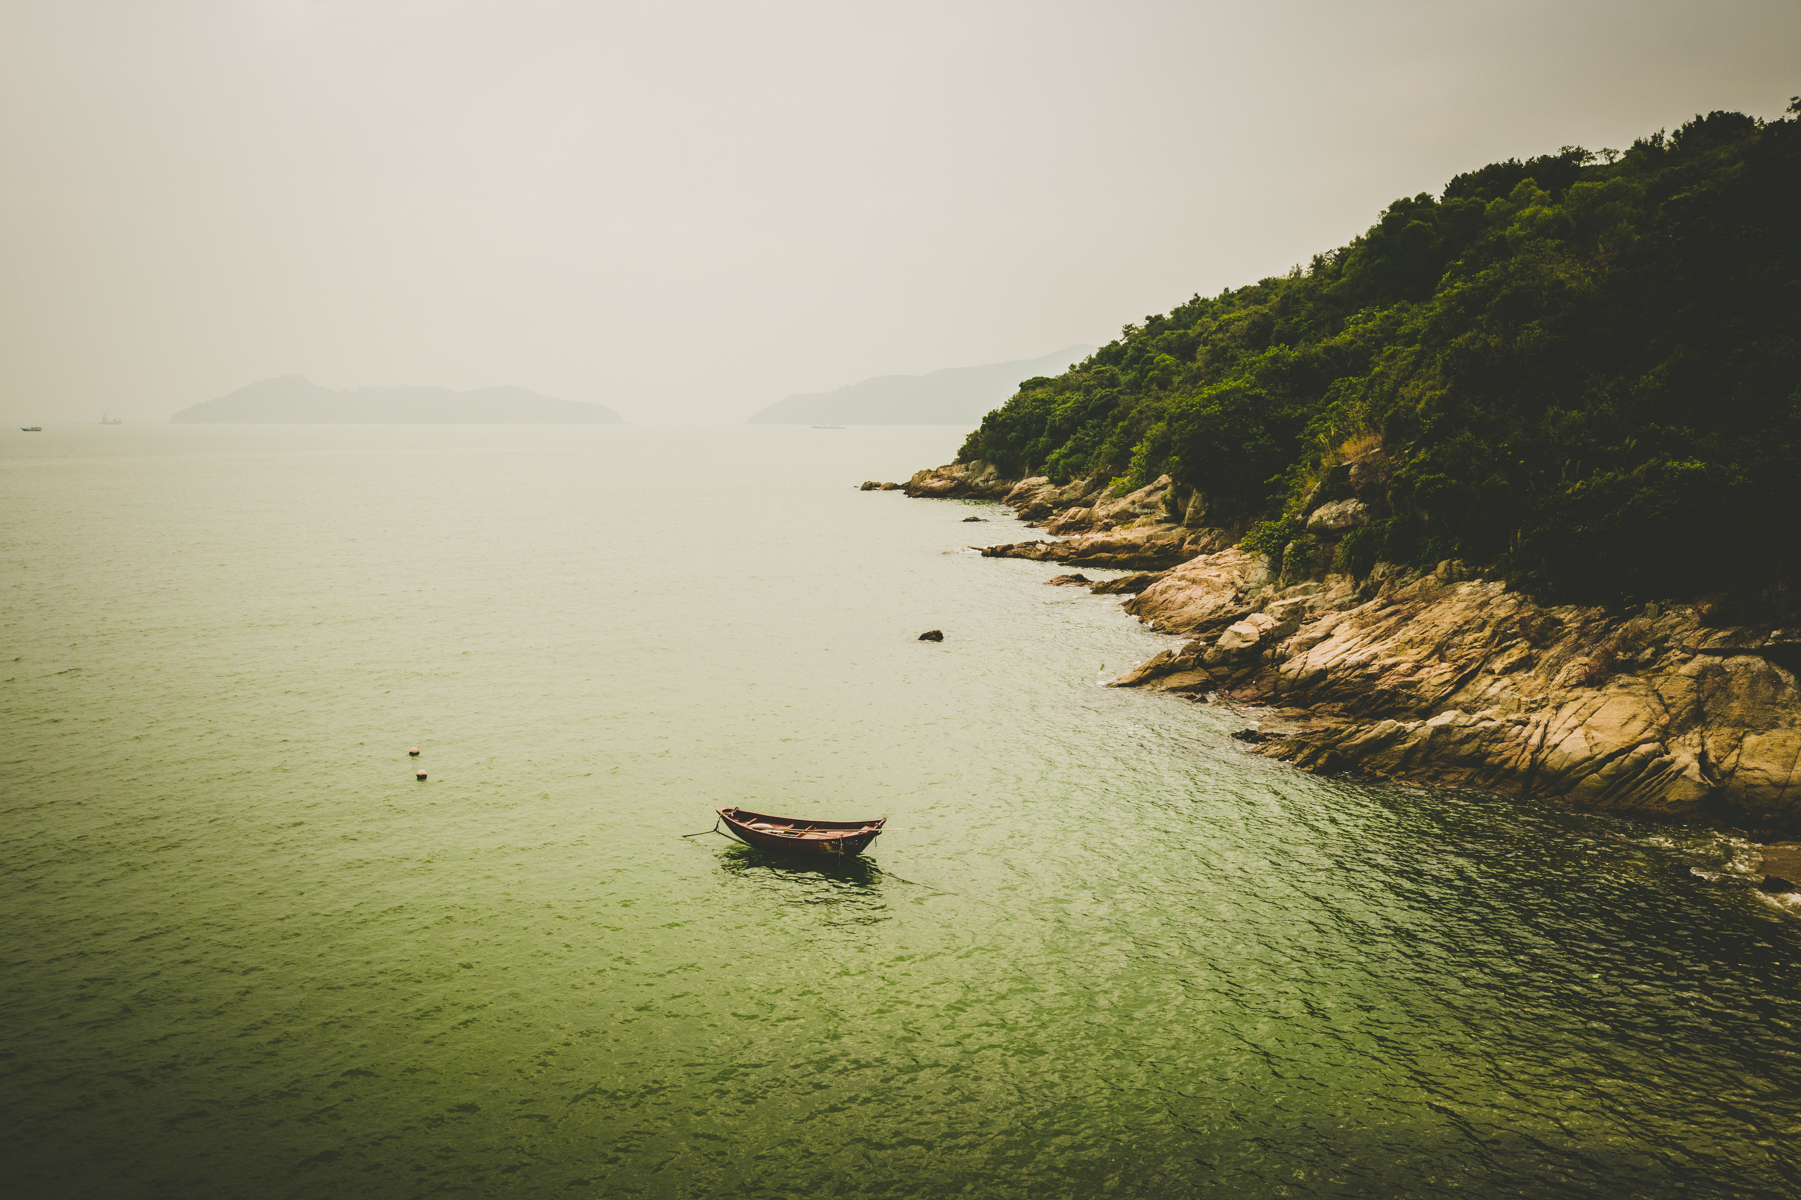 A lone rowboat tied to the shore on Lantau Island, Hong Kong.